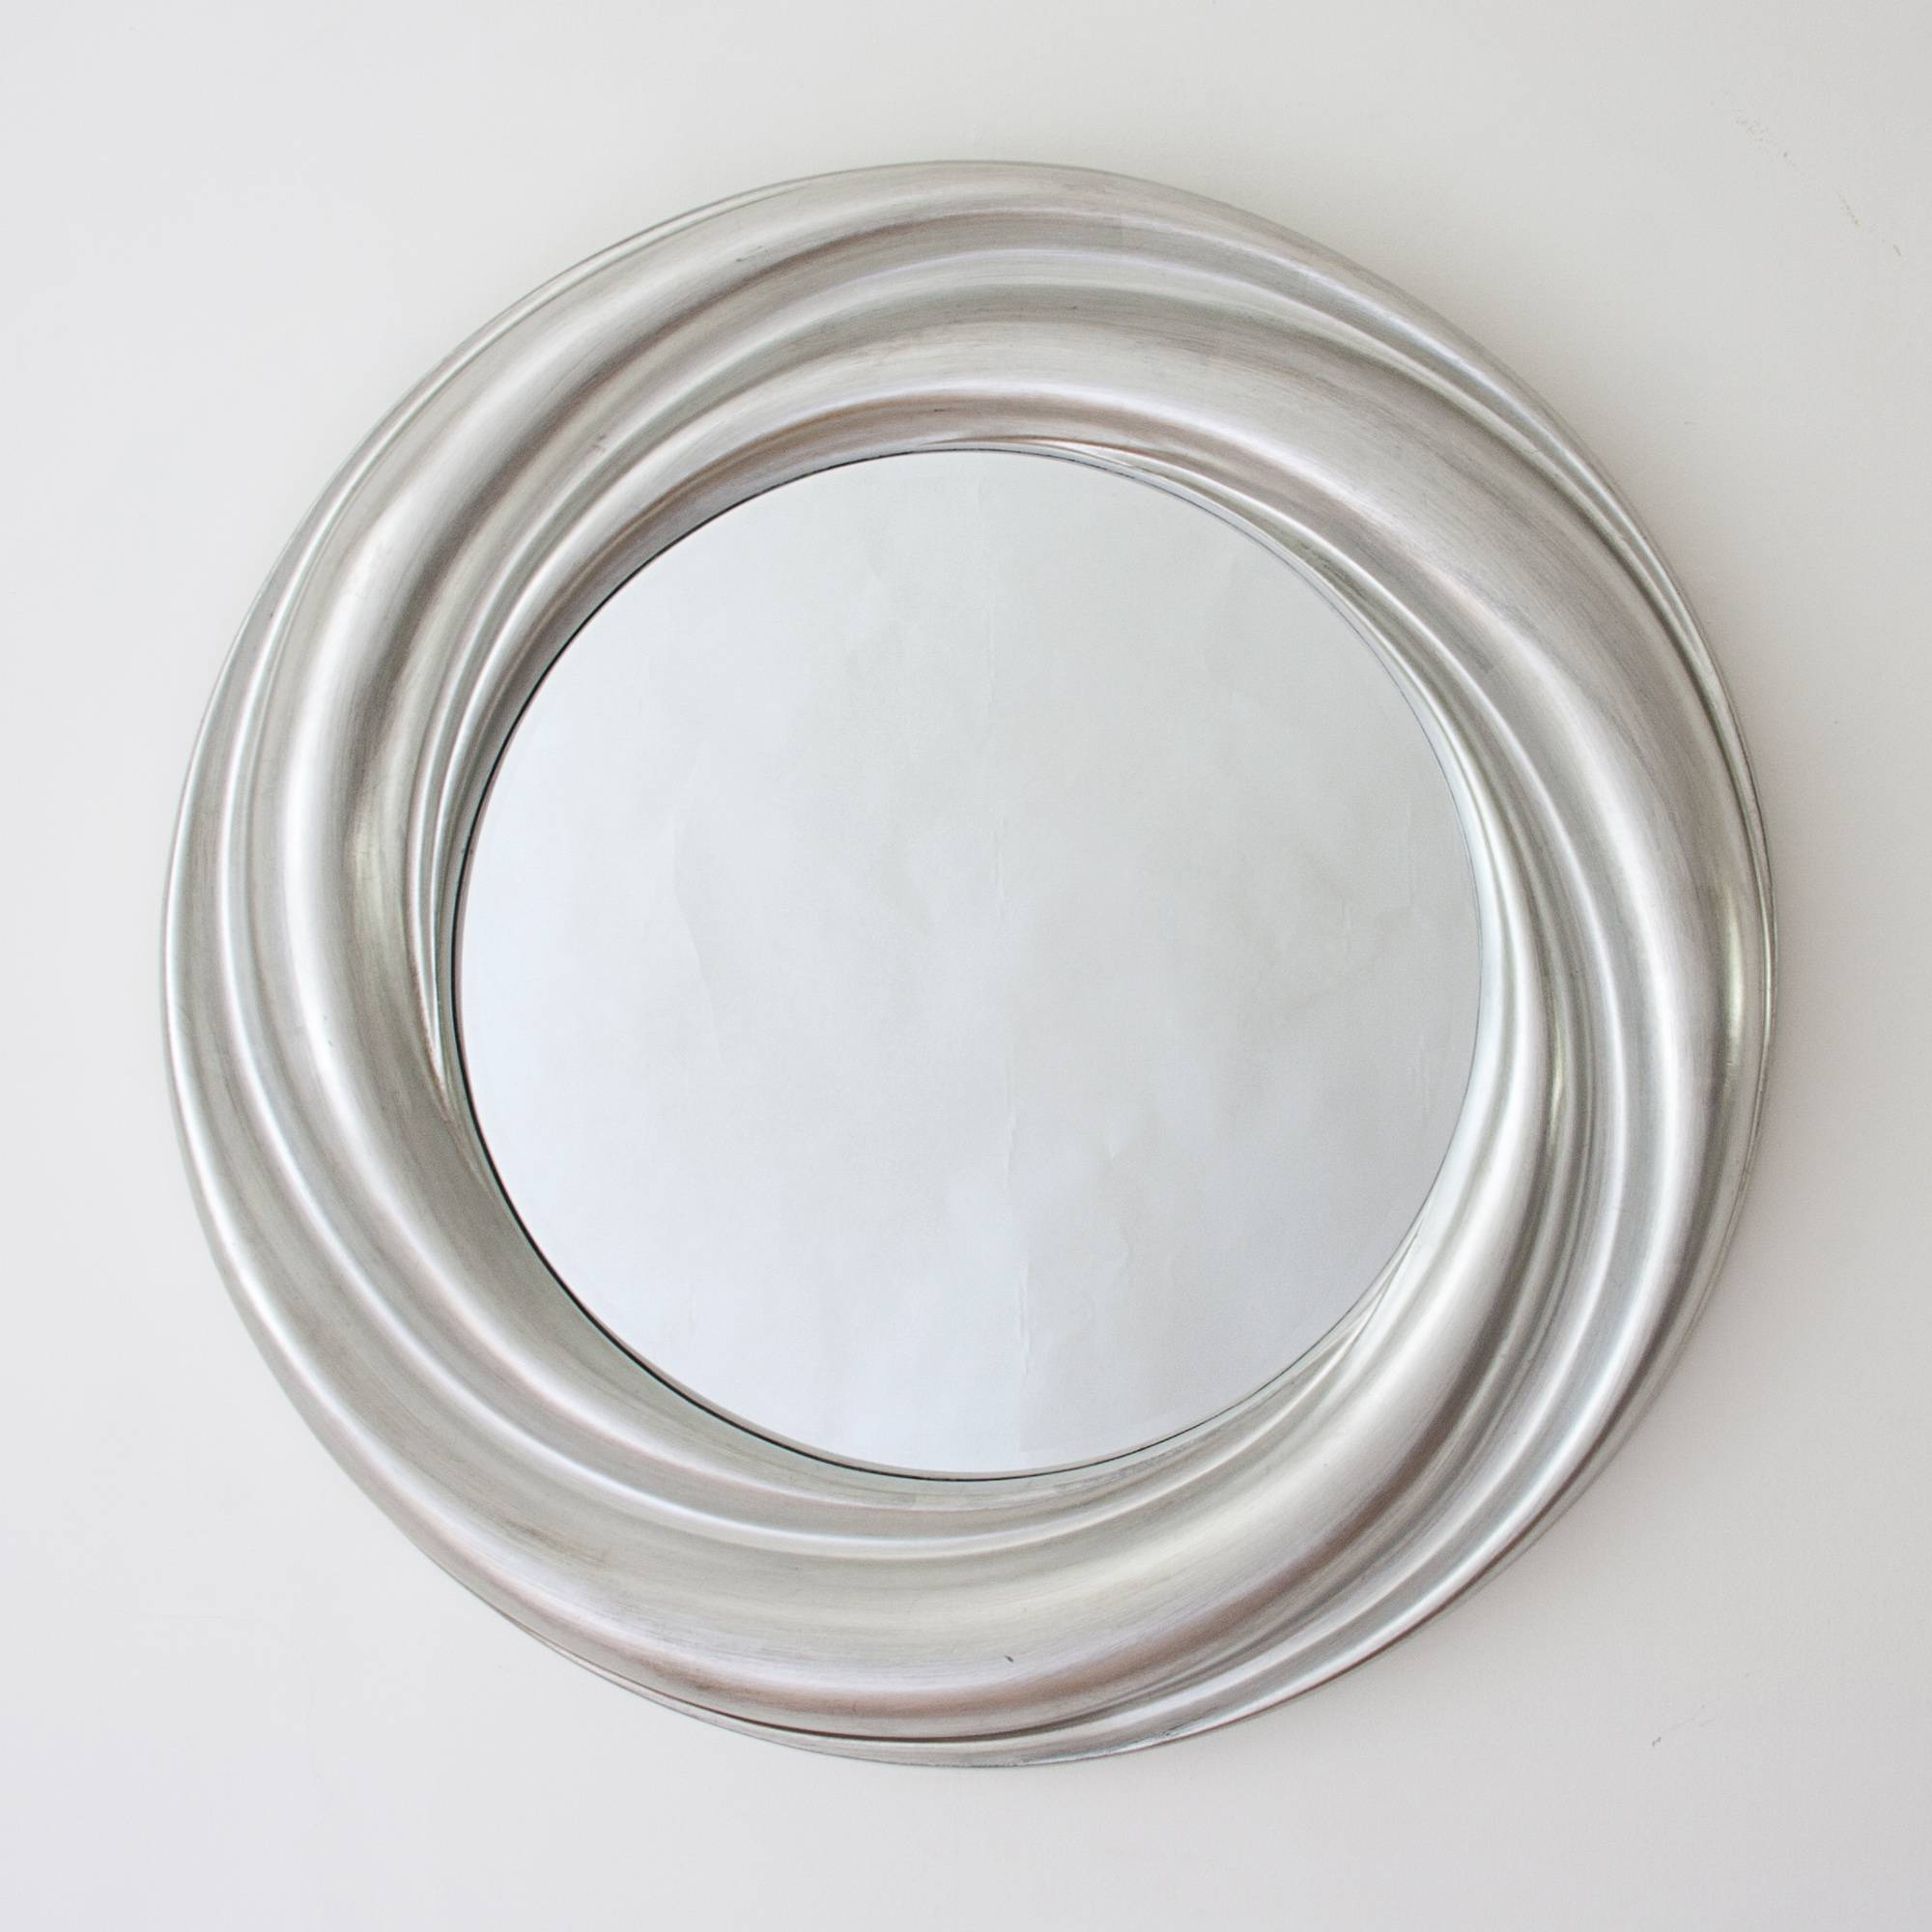 Bathroom Round Silver Mirror Pictures, Decorations, Inspiration regarding Contemporary Round Mirrors (Image 7 of 25)